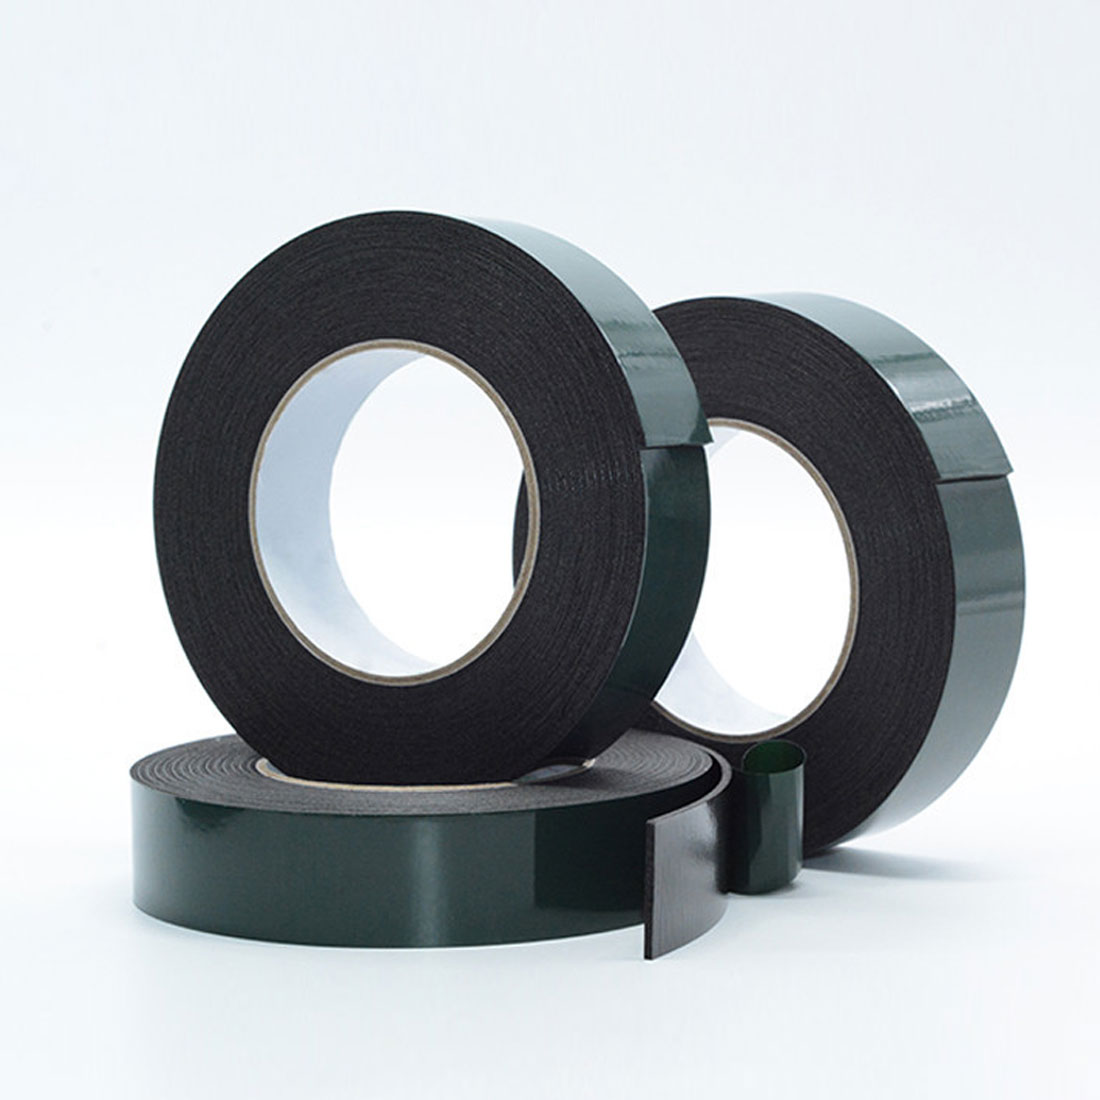 10M 10mm Thickness Black Super Strong Self Adhesive Foam Car Trim Body Double Sided Tape Mobile Phone Dust-proof Tape